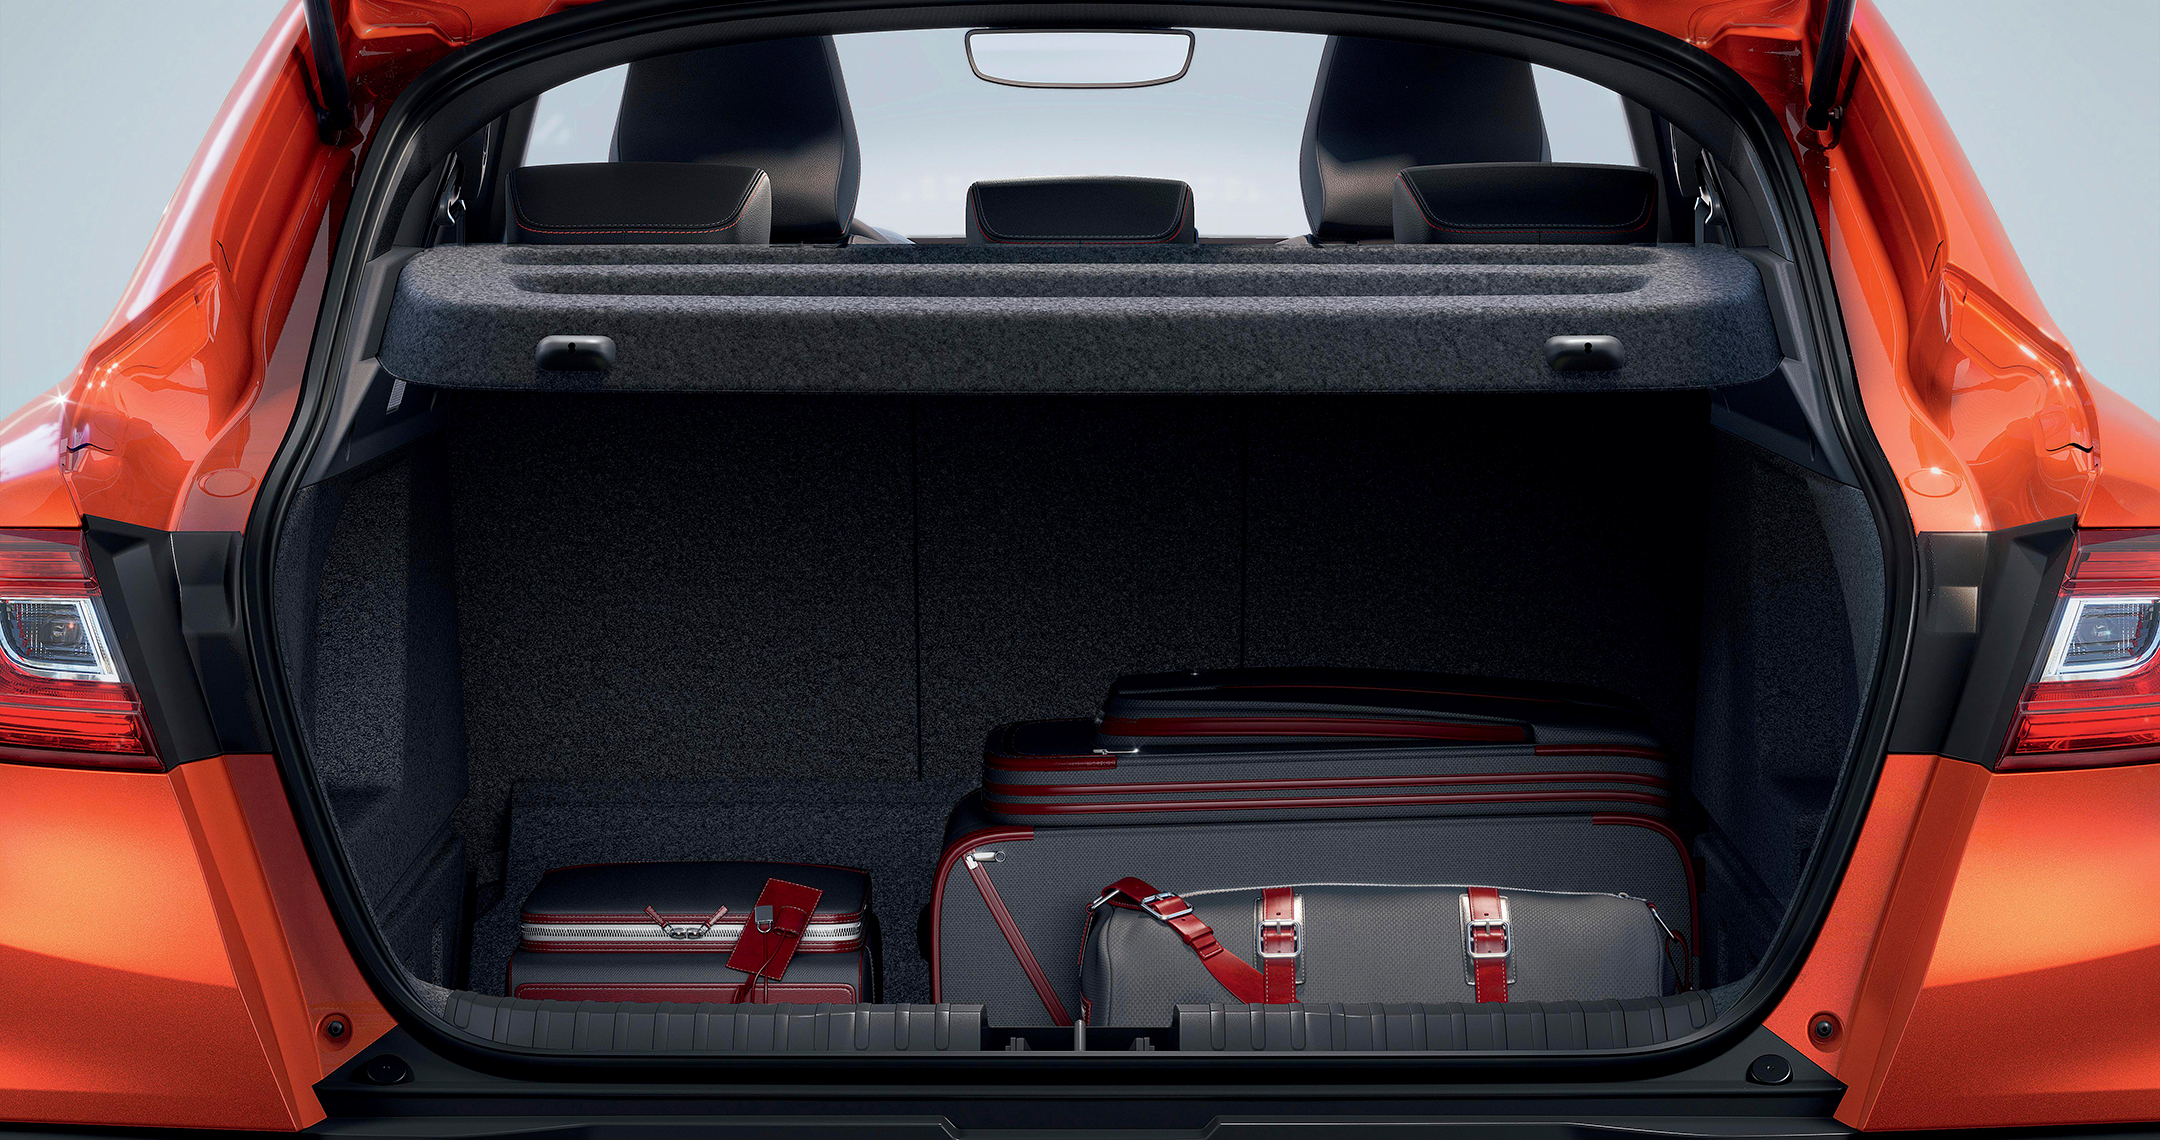 Renault Arkana R.S. Line E-TECH Hybrid - 2020 - rear boot-trunk luggage / coffre arrière bagage